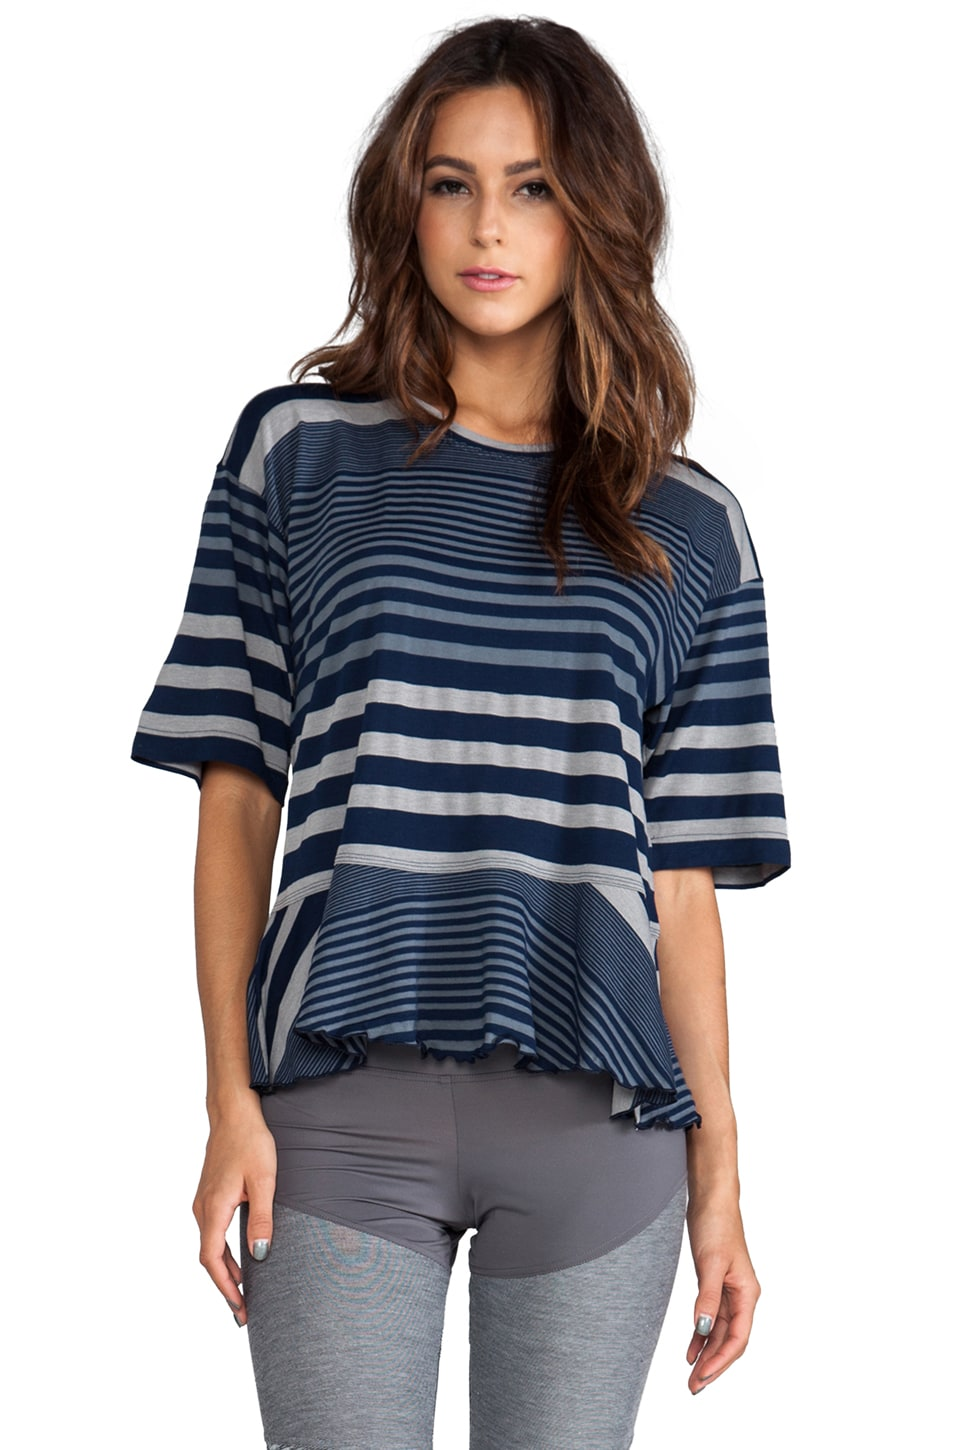 adidas by Stella McCartney Stu Striped Tee in Collegiate Navy/Lead/Core Heather